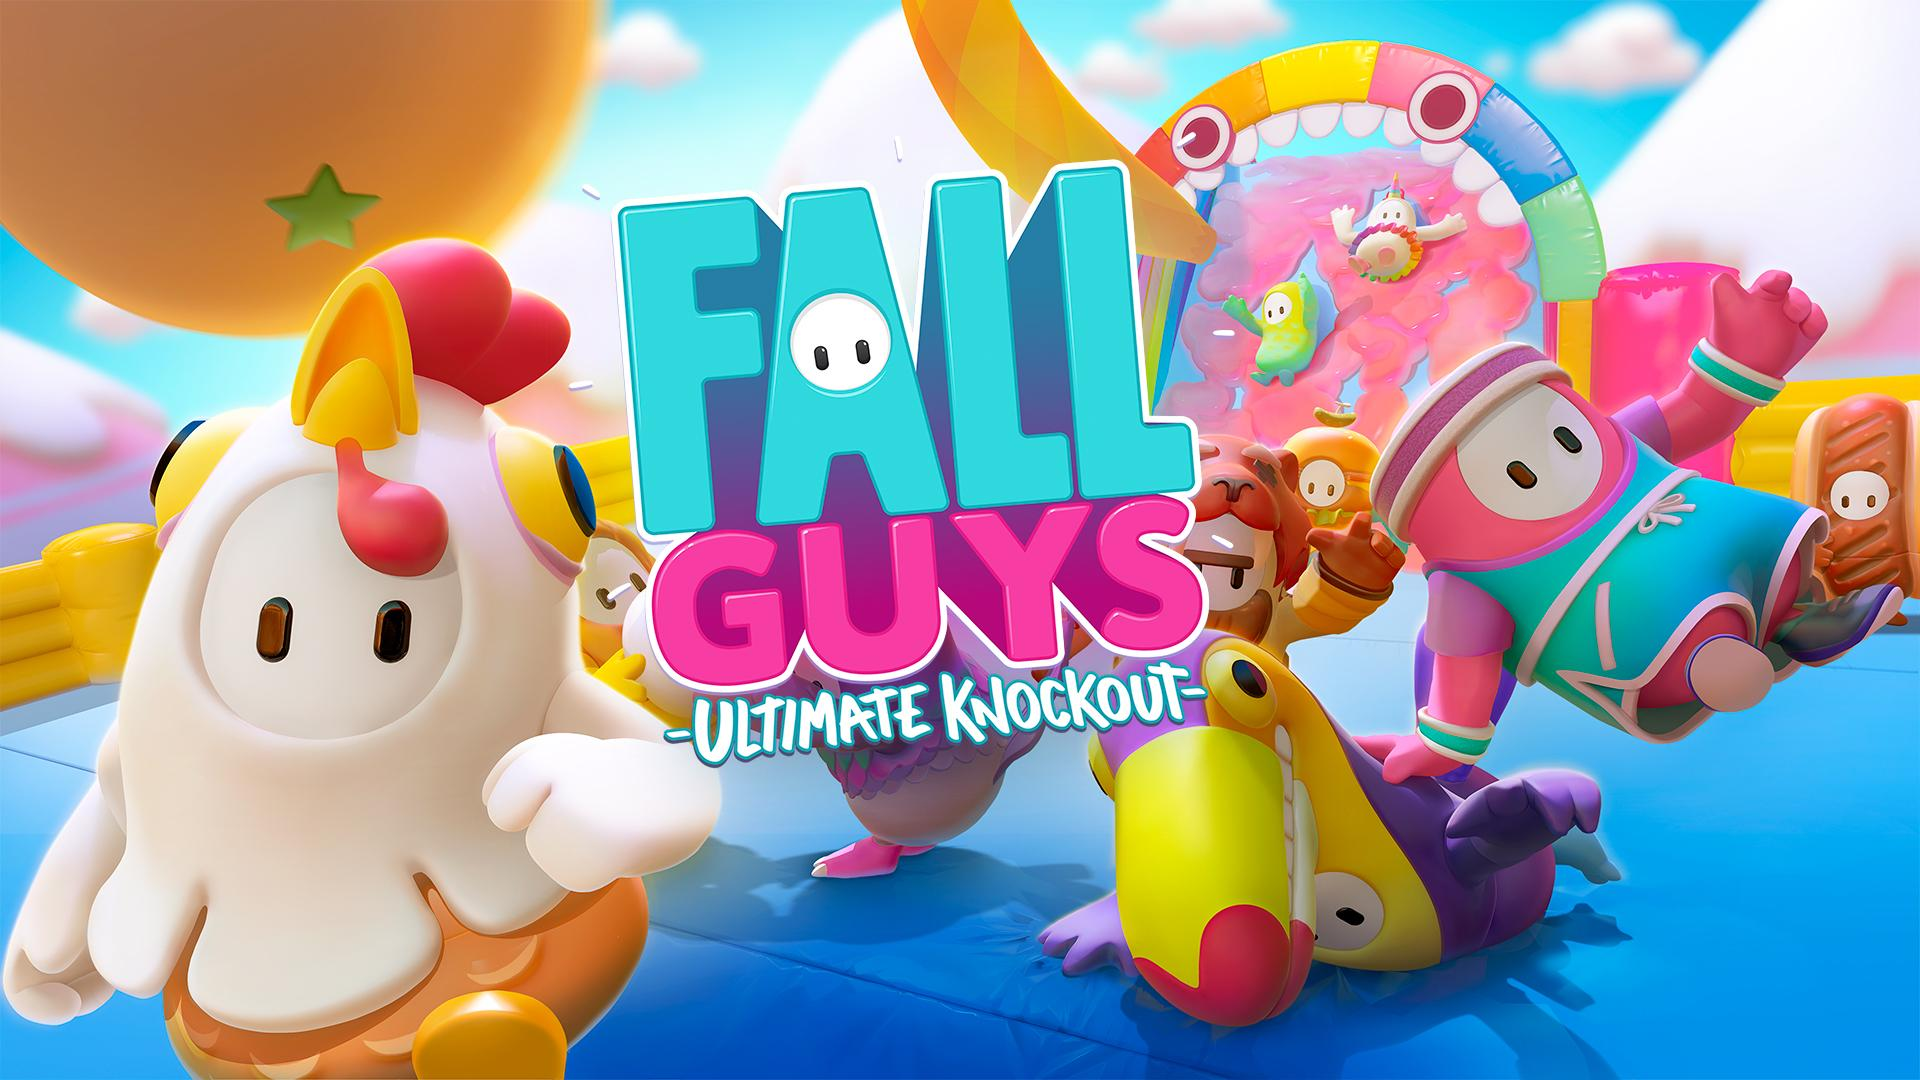 Fall Guys Ultimate Knockout Wallpapers Top Free Fall Guys Ultimate Knockout Backgrounds Wallpaperaccess